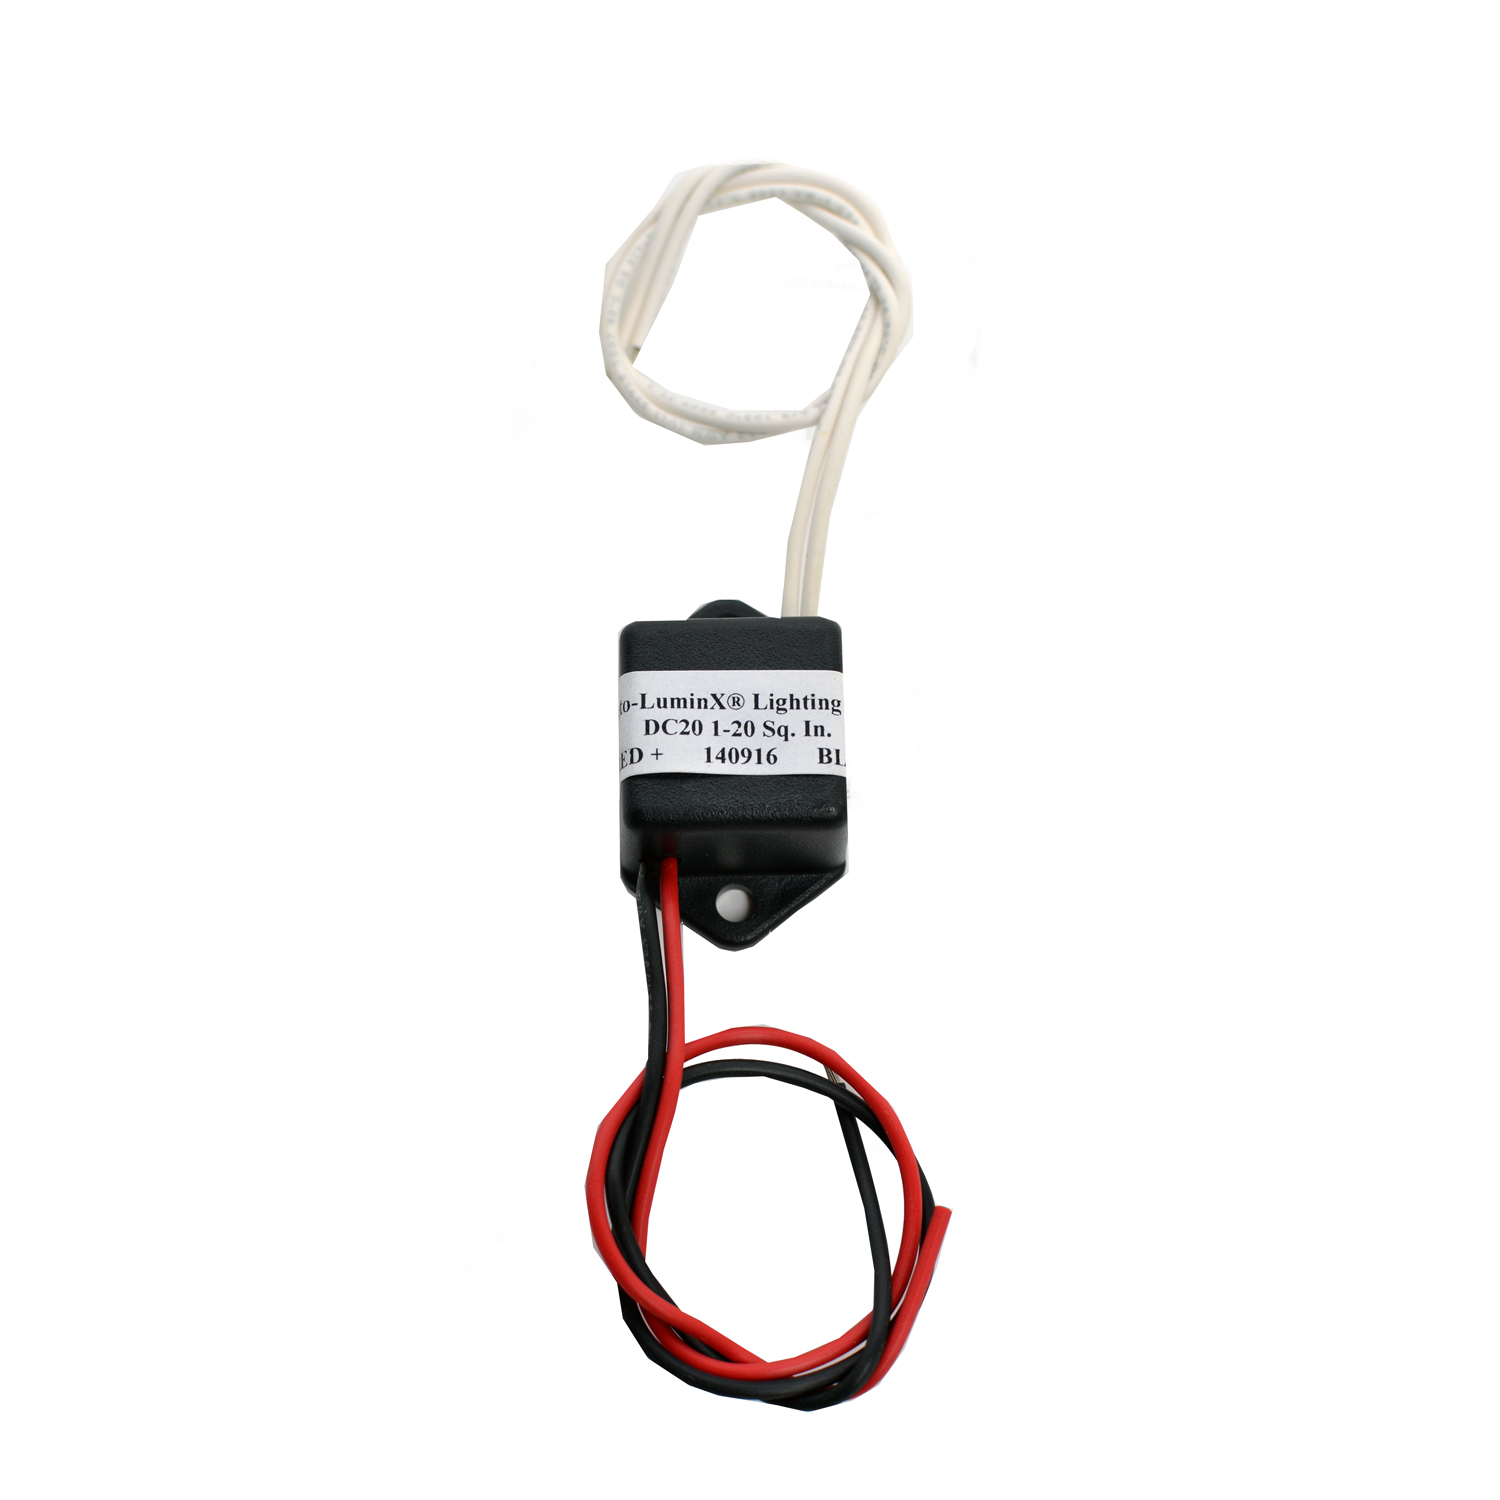 """Model DC-20P  Illuminated Area:1-18 sq. in. Input Current:~88 mA Input Voltage:12 VDC Output Voltage:200-300 VAC Dimensions:1.75"""" x 1.08"""" x 0.79"""" Weight: 0.1 lbs (1.6 oz)"""